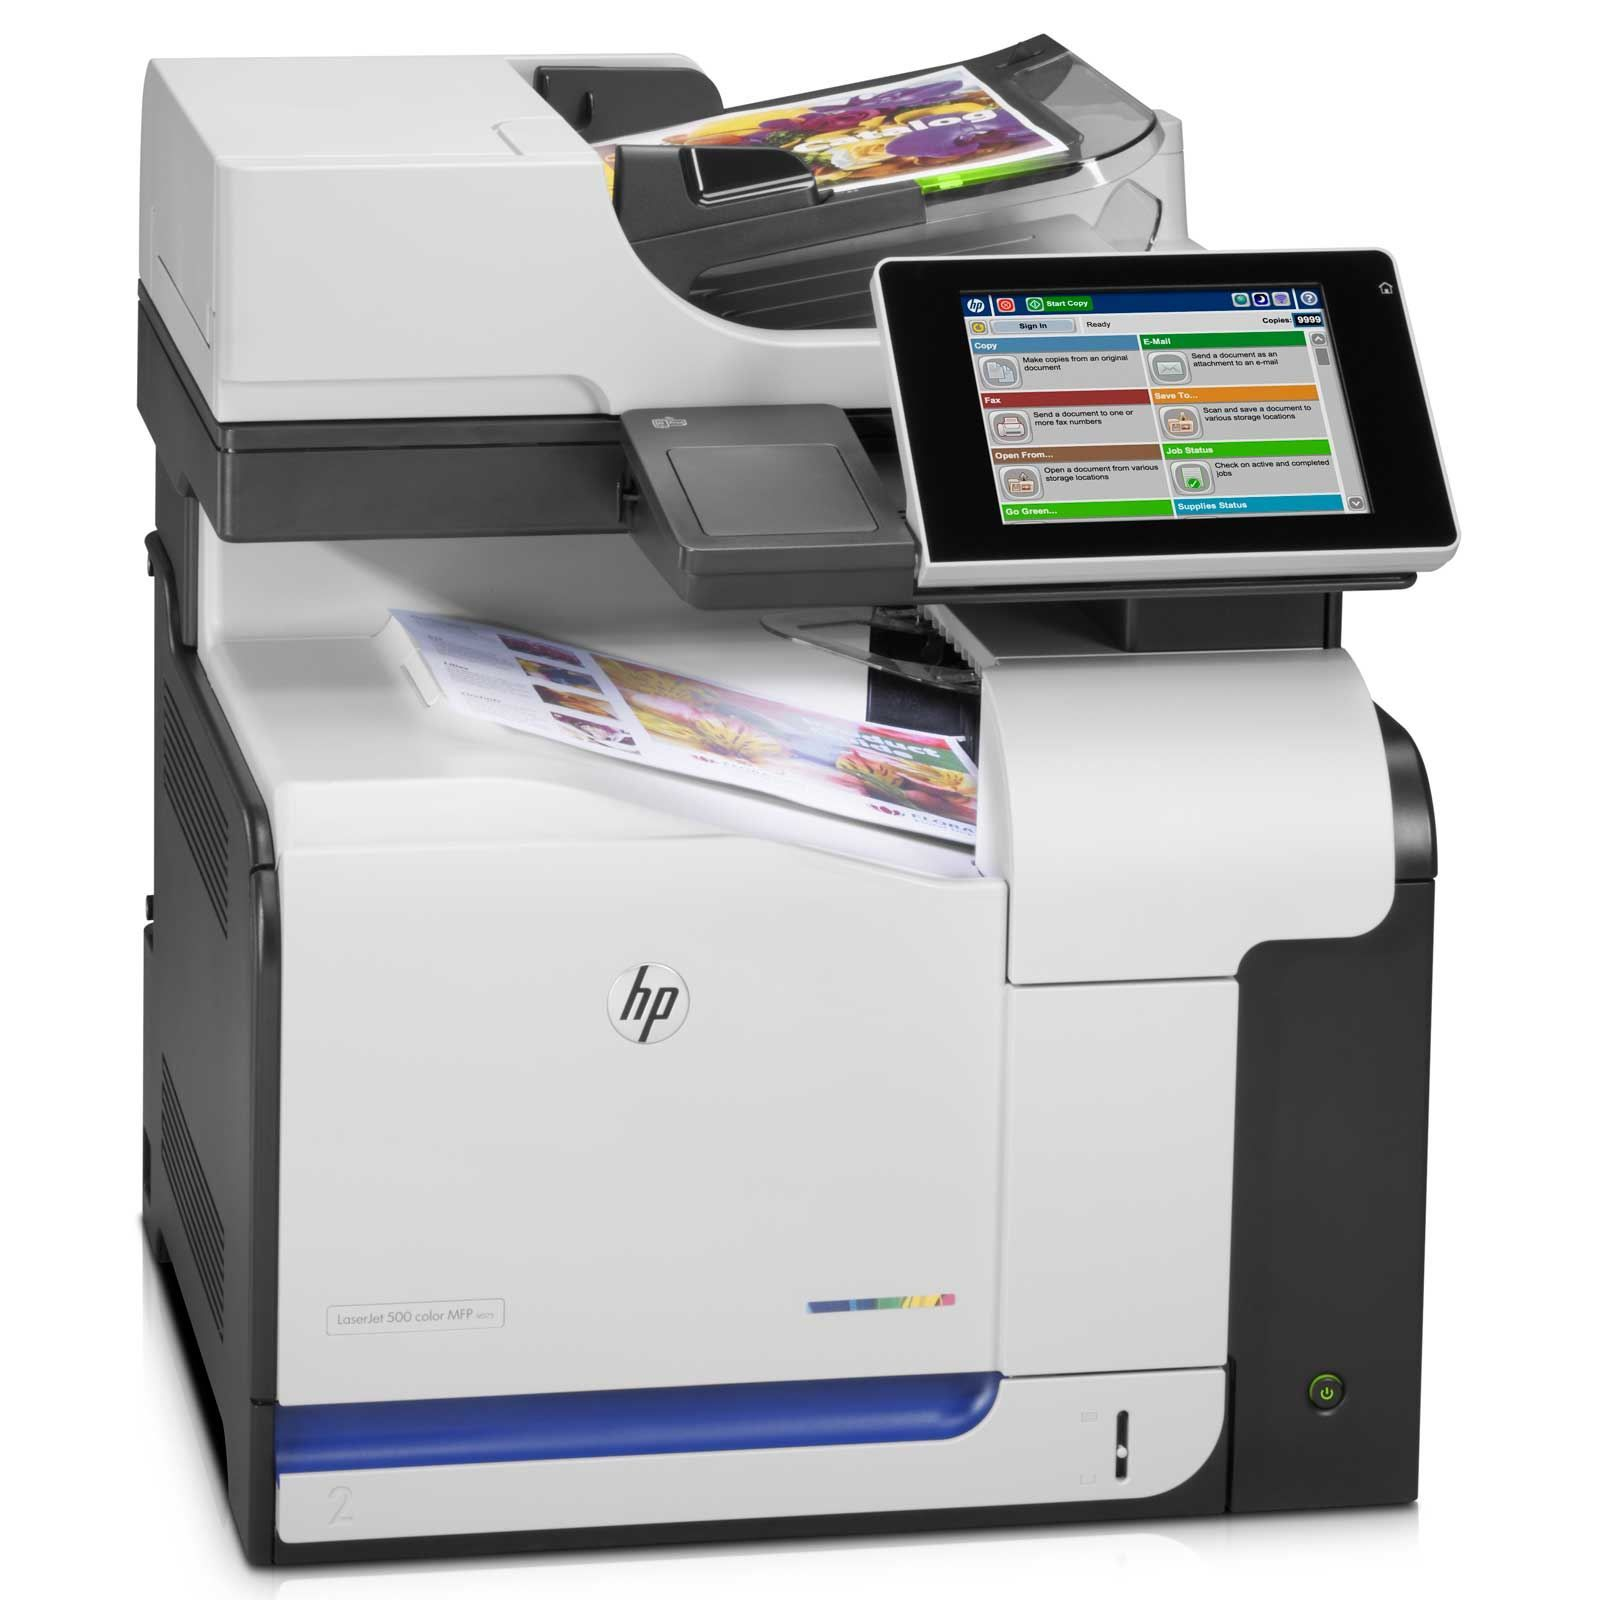 HP LaserJet Enterprise 500 M575